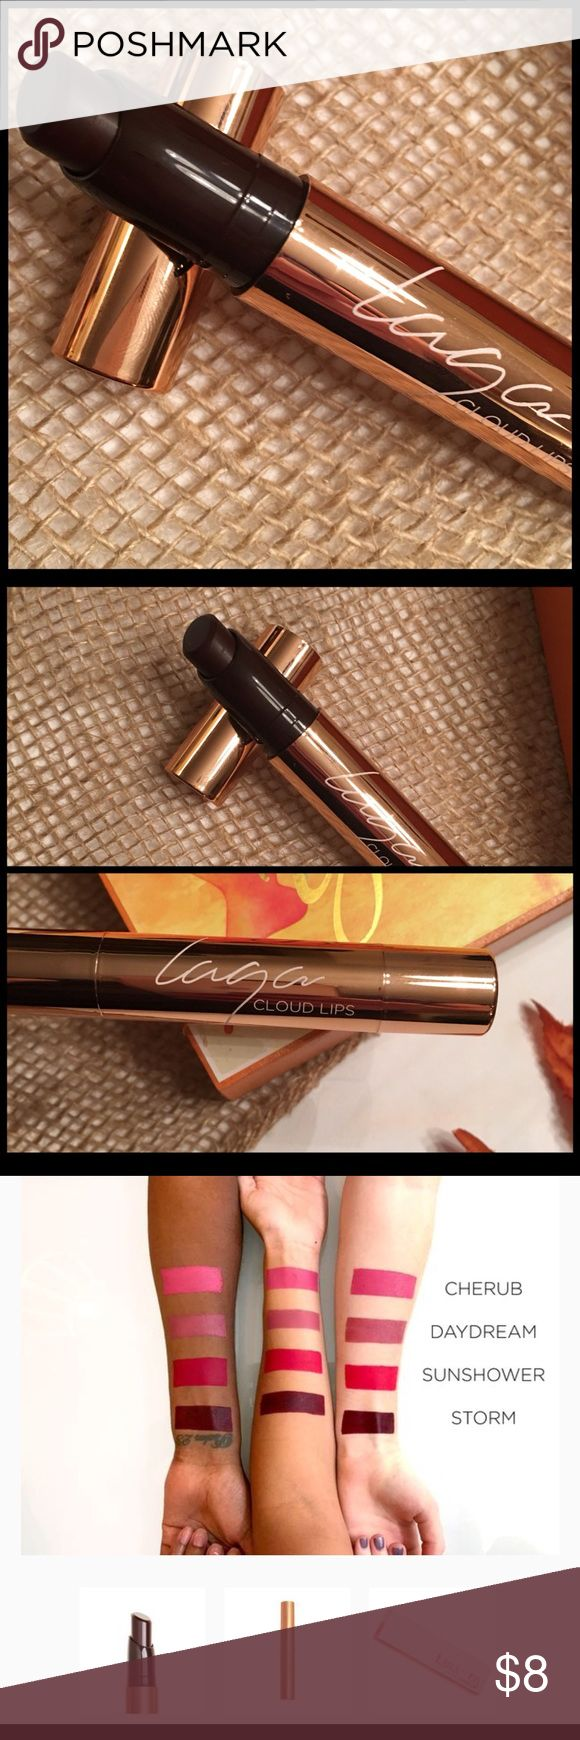 "🍁LAQA & CO. CLOUD LIPS🍁 🍁BRAND NEW & UNUSED🍁 Did not come with a box. LAQA & CO CLOUD LIPS IN THE COLOR ""STORM"" 3rd picture shows the color swatched. It's a dark brown, burgundy color. Perfect for fall and winter! The color is just too dark for me. It's a full coverage matte lipstick. Highly pigmented and long lasting. Received in my Boxycharm sub box.                                   🍁BUNDLE TO SAVE 20%🍁 LAQA & CO Makeup Lipstick"